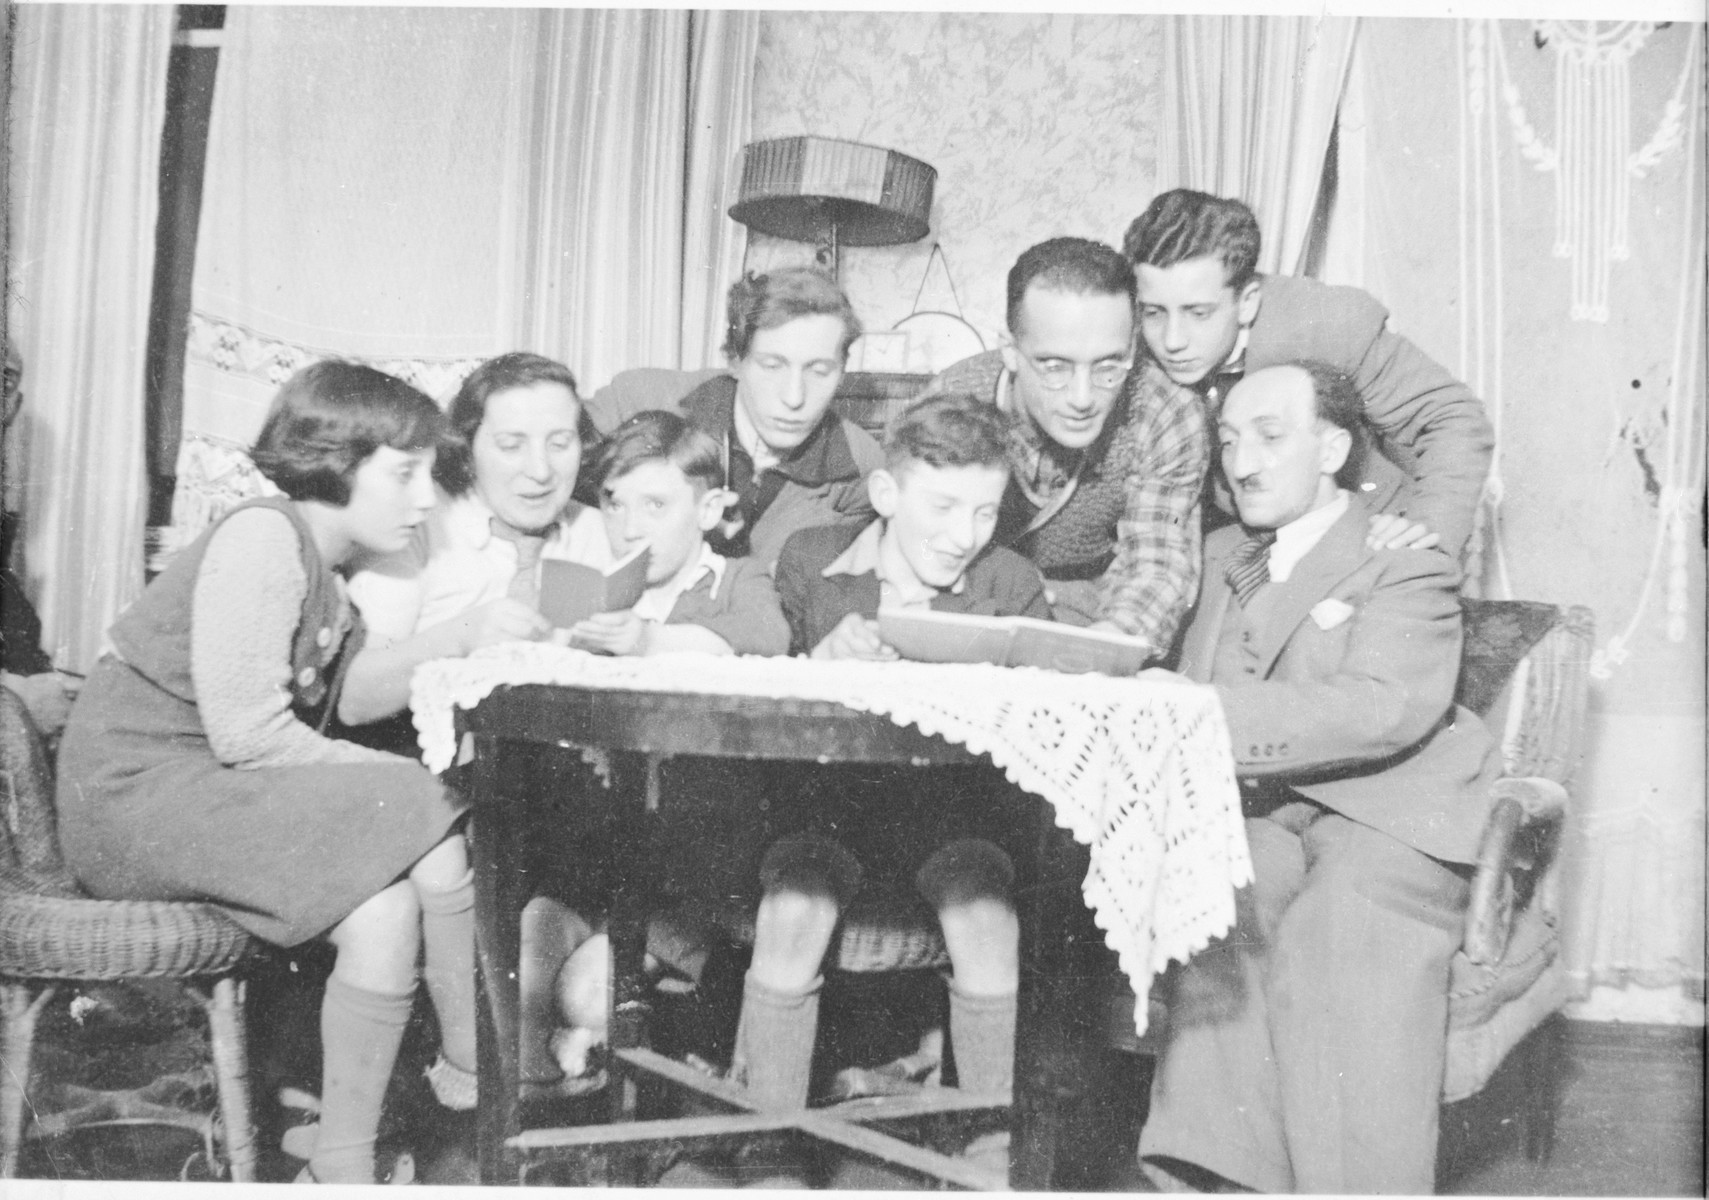 Jizchak Schwersenz studies a book with members of the Lewin family in their home in Berlin.  Pictured from right to left are: Arthur Lewin (father), Manfred Lewin, Jizchak Schwersenz, Rudolf, Schlomo, Gerd, Jenny (mother), and Caecilie Lewin.